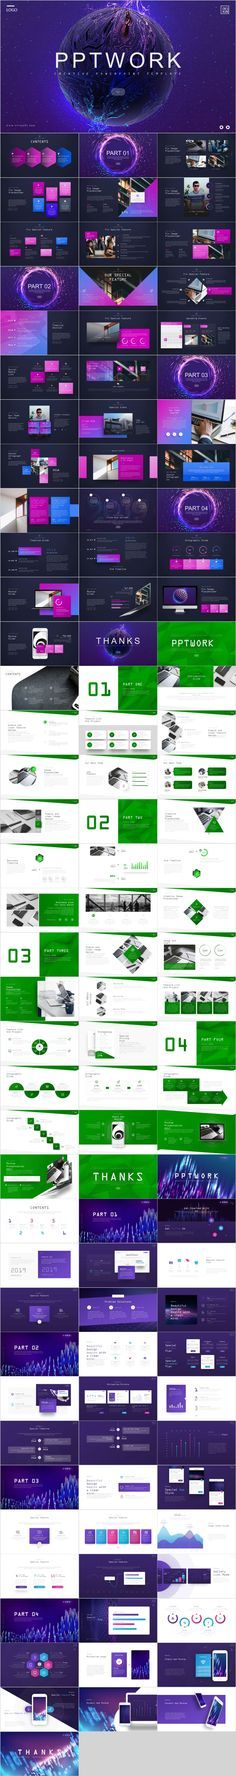 3 in 1 project report PowerPoint template – The highest quality PowerPoint Templates and Keynote Templates download Jeopardy Powerpoint Template, Professional Powerpoint Templates, Powerpoint Design Templates, Ppt Design, Keynote Template, Tool Design, Design Art, Powerpoint Presentation Slides, Presentation Software